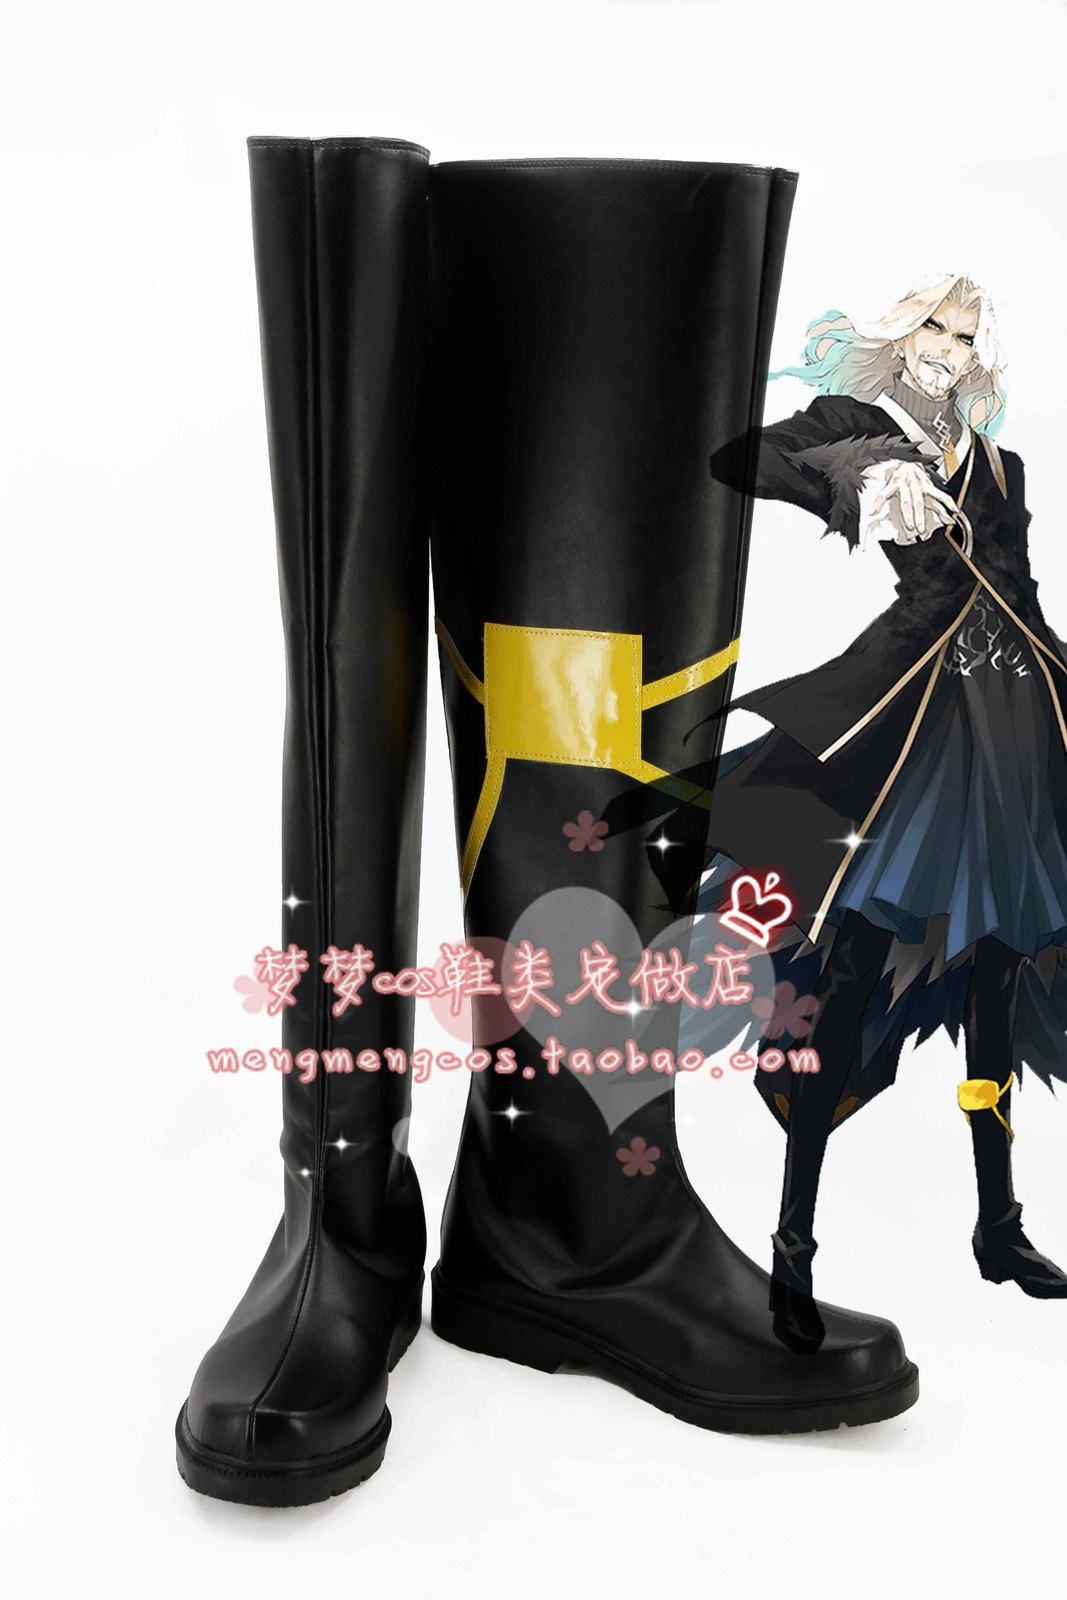 FateApocrypha Fate Apocrypha Draculia  Servant cos Cosplay Shoes boots #AT21